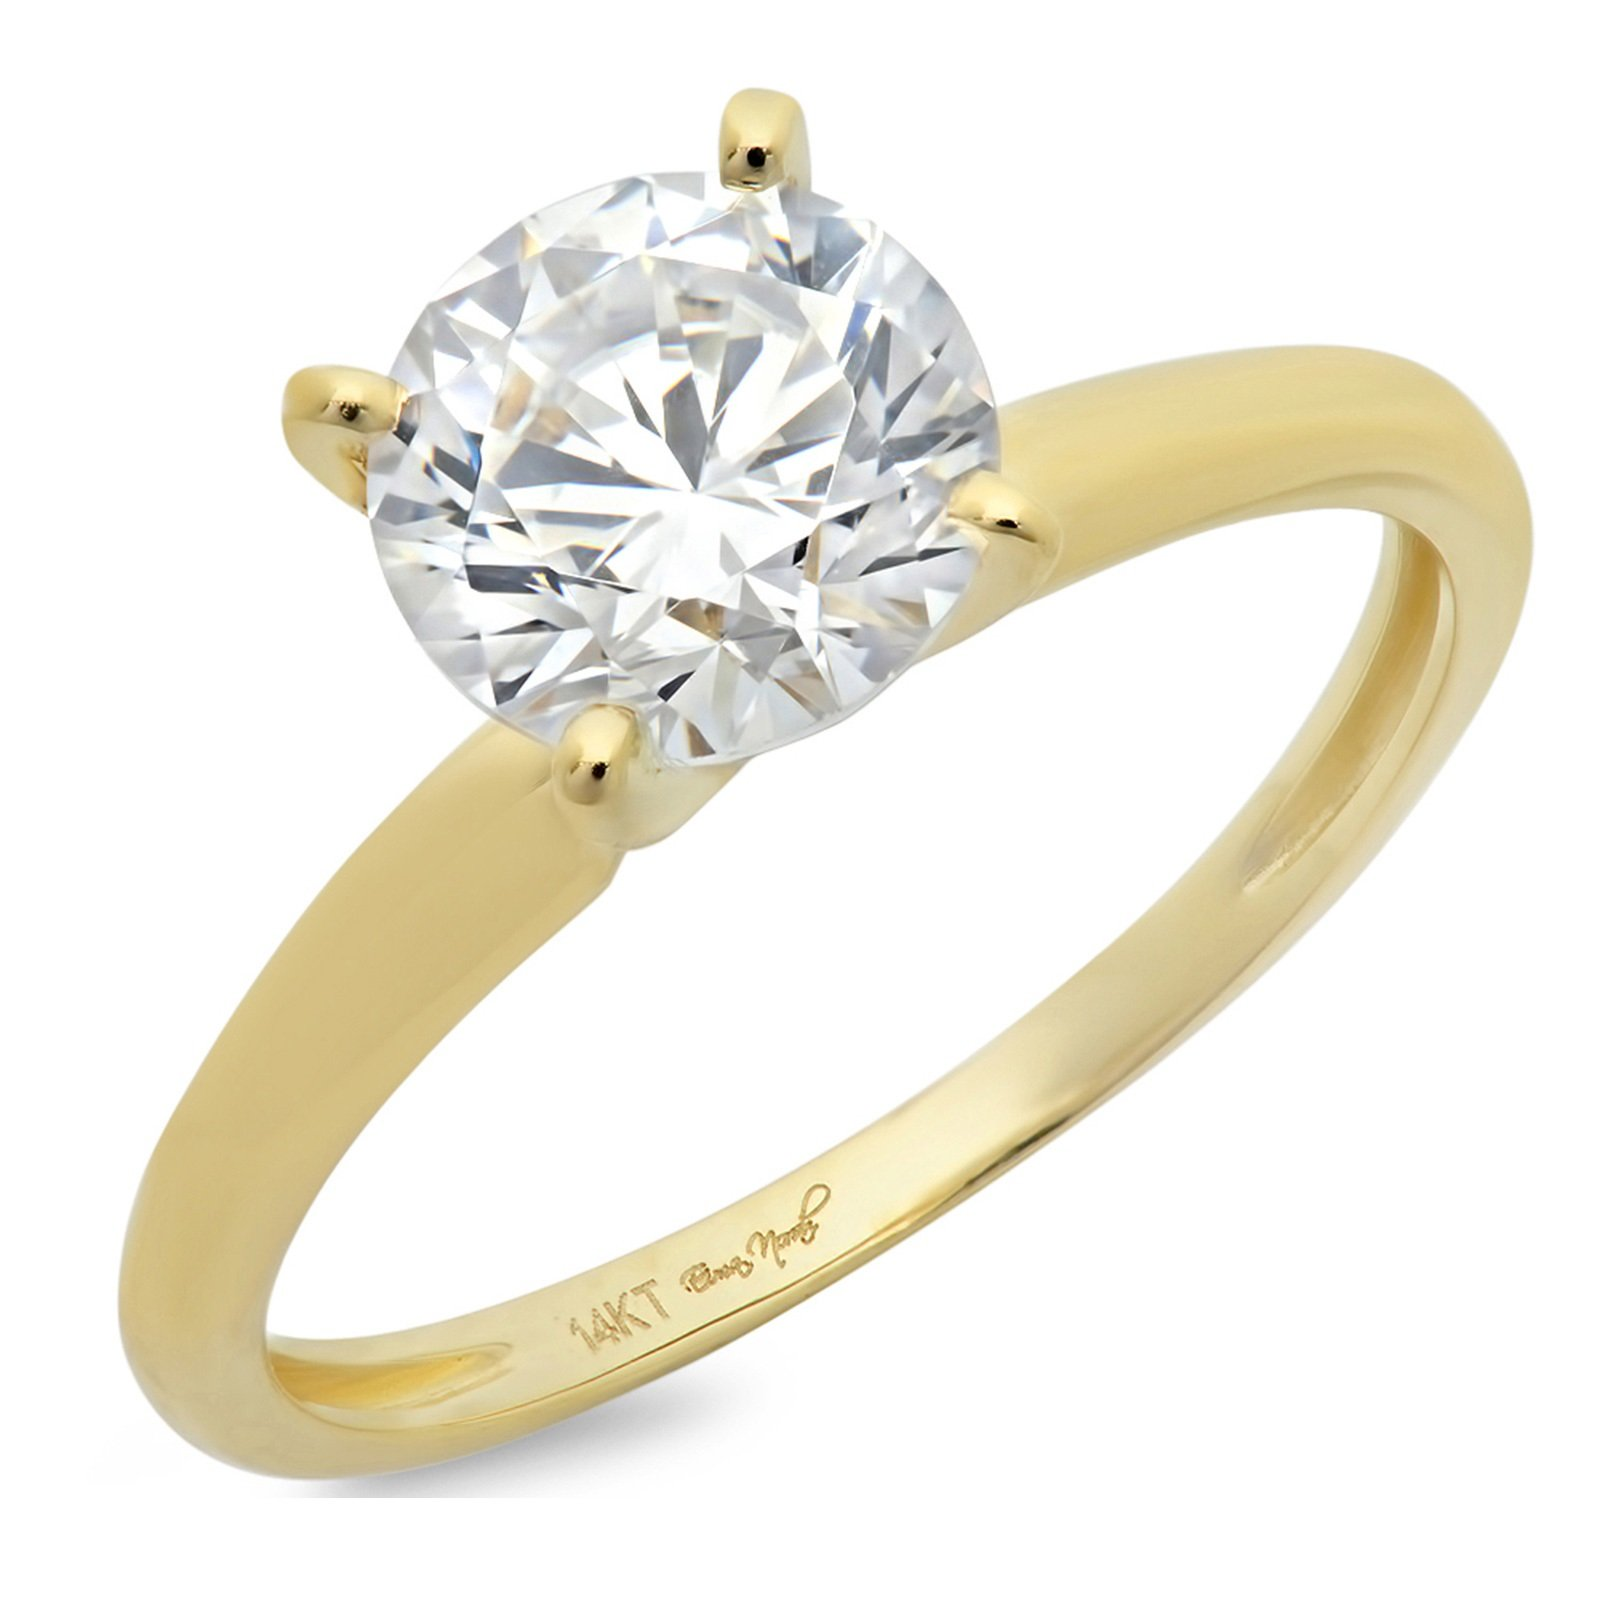 Clara Pucci 2.20 CT Round Cut 4-Prong Solitaire Anniversary Promise Bridal Engagement Wedding Ring 14k Yellow Gold, Size 9